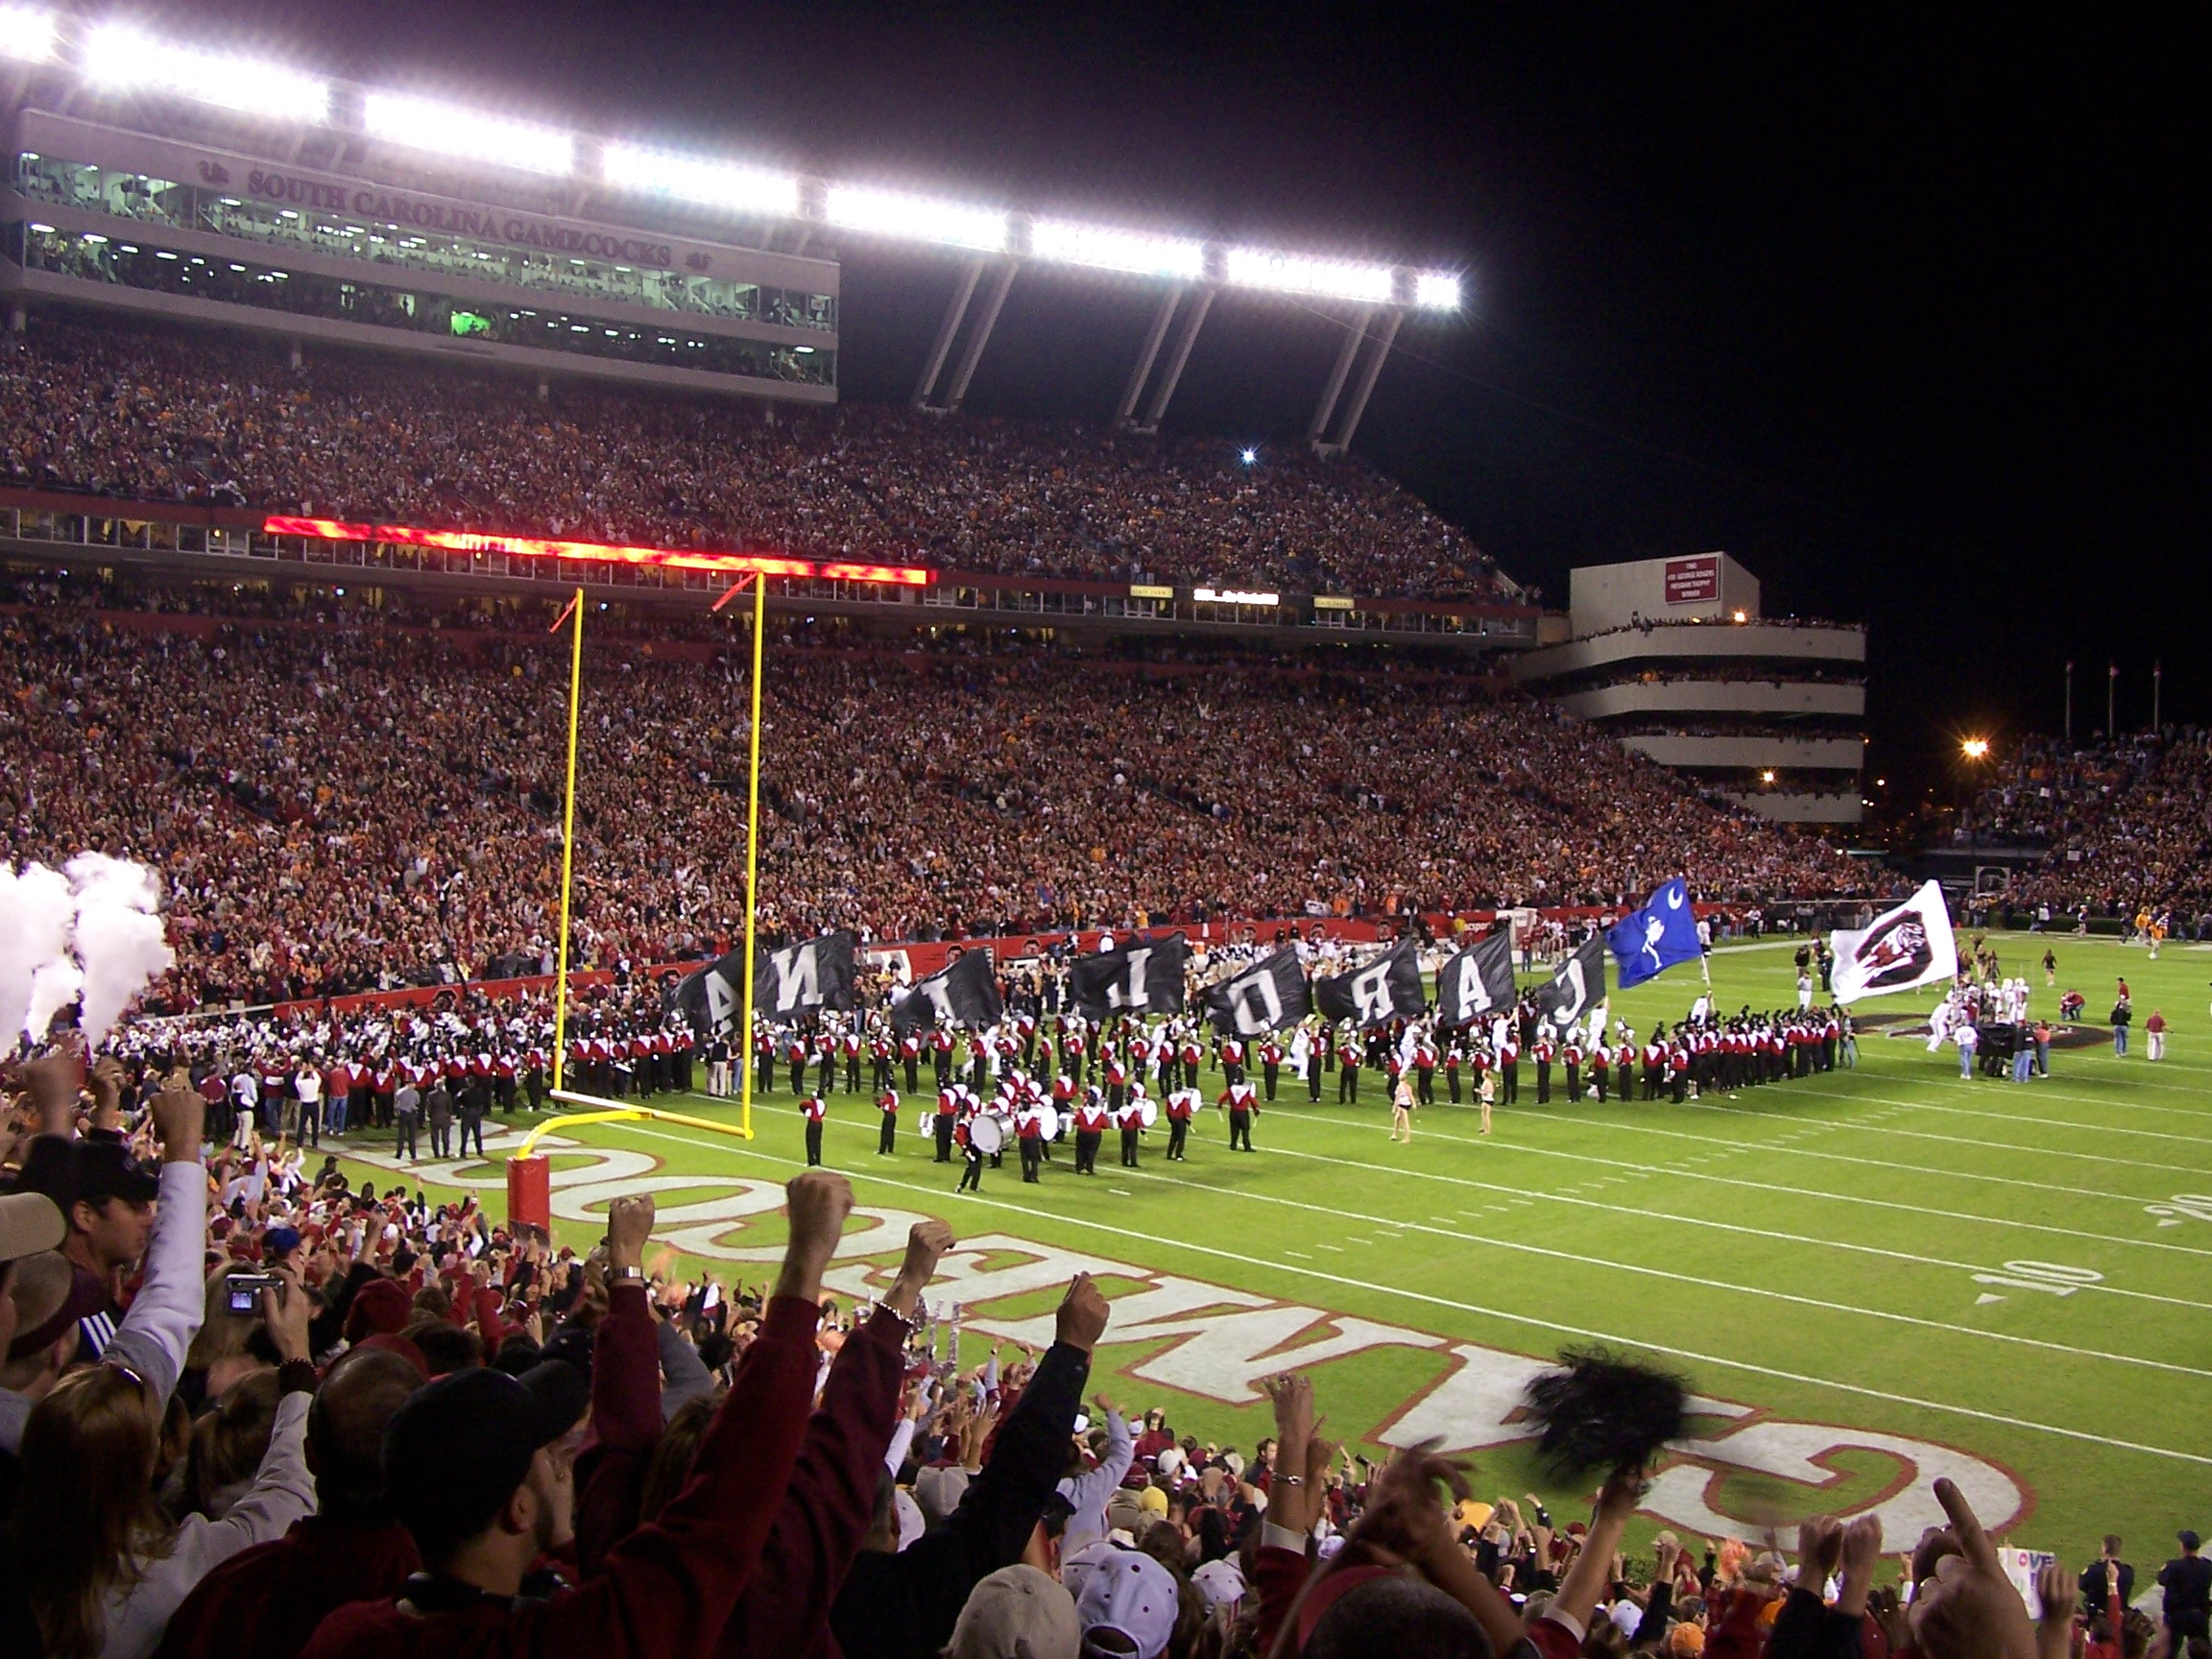 Datei:Williams-Brice Stadium.jpg – Wikipedia